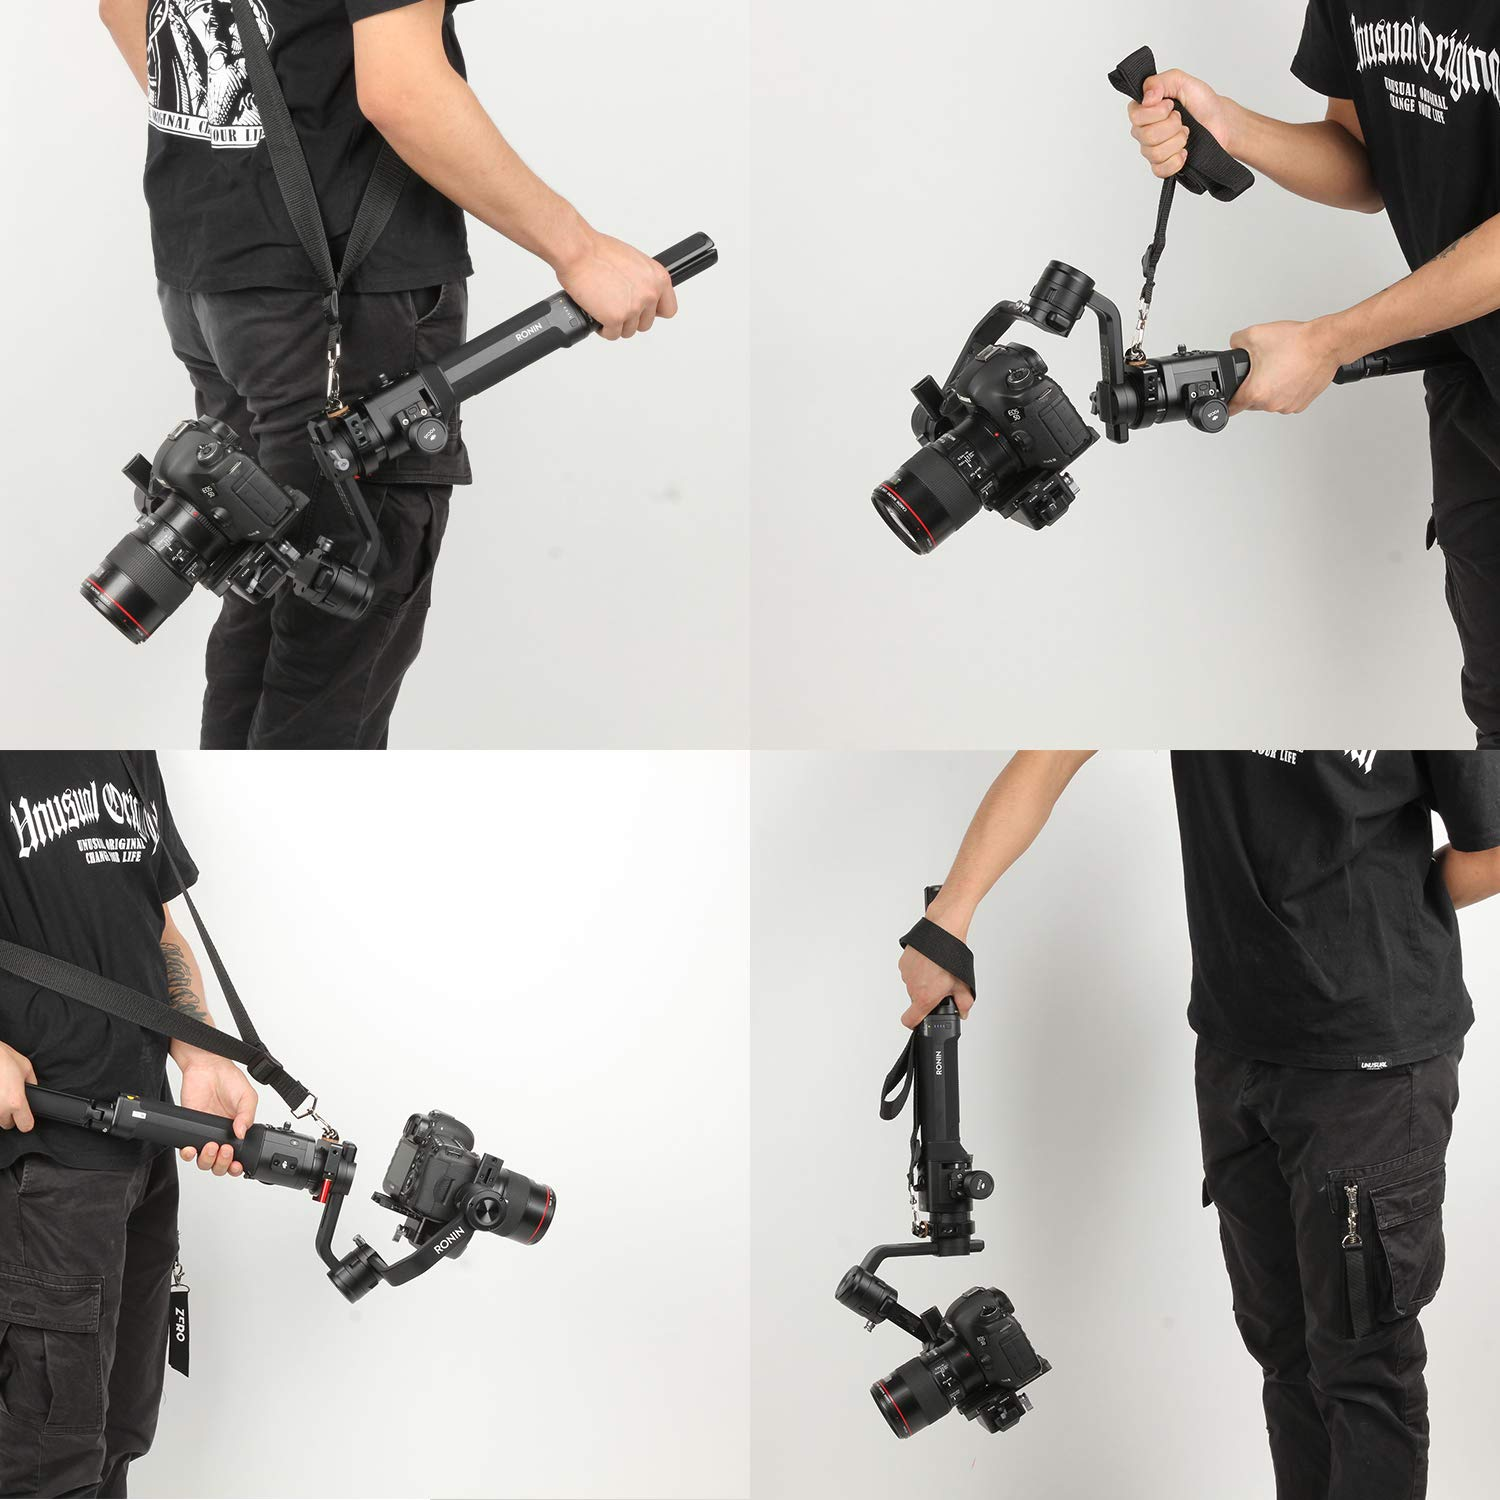 Ronin-S Shoulder Strap Clamp Ring Adapter for Flash Rode Video Microphone and LED Light Accessory Filmmaker Vlog Via 1/4'' and 3/8'' Screw by Sutefoto (Image #4)